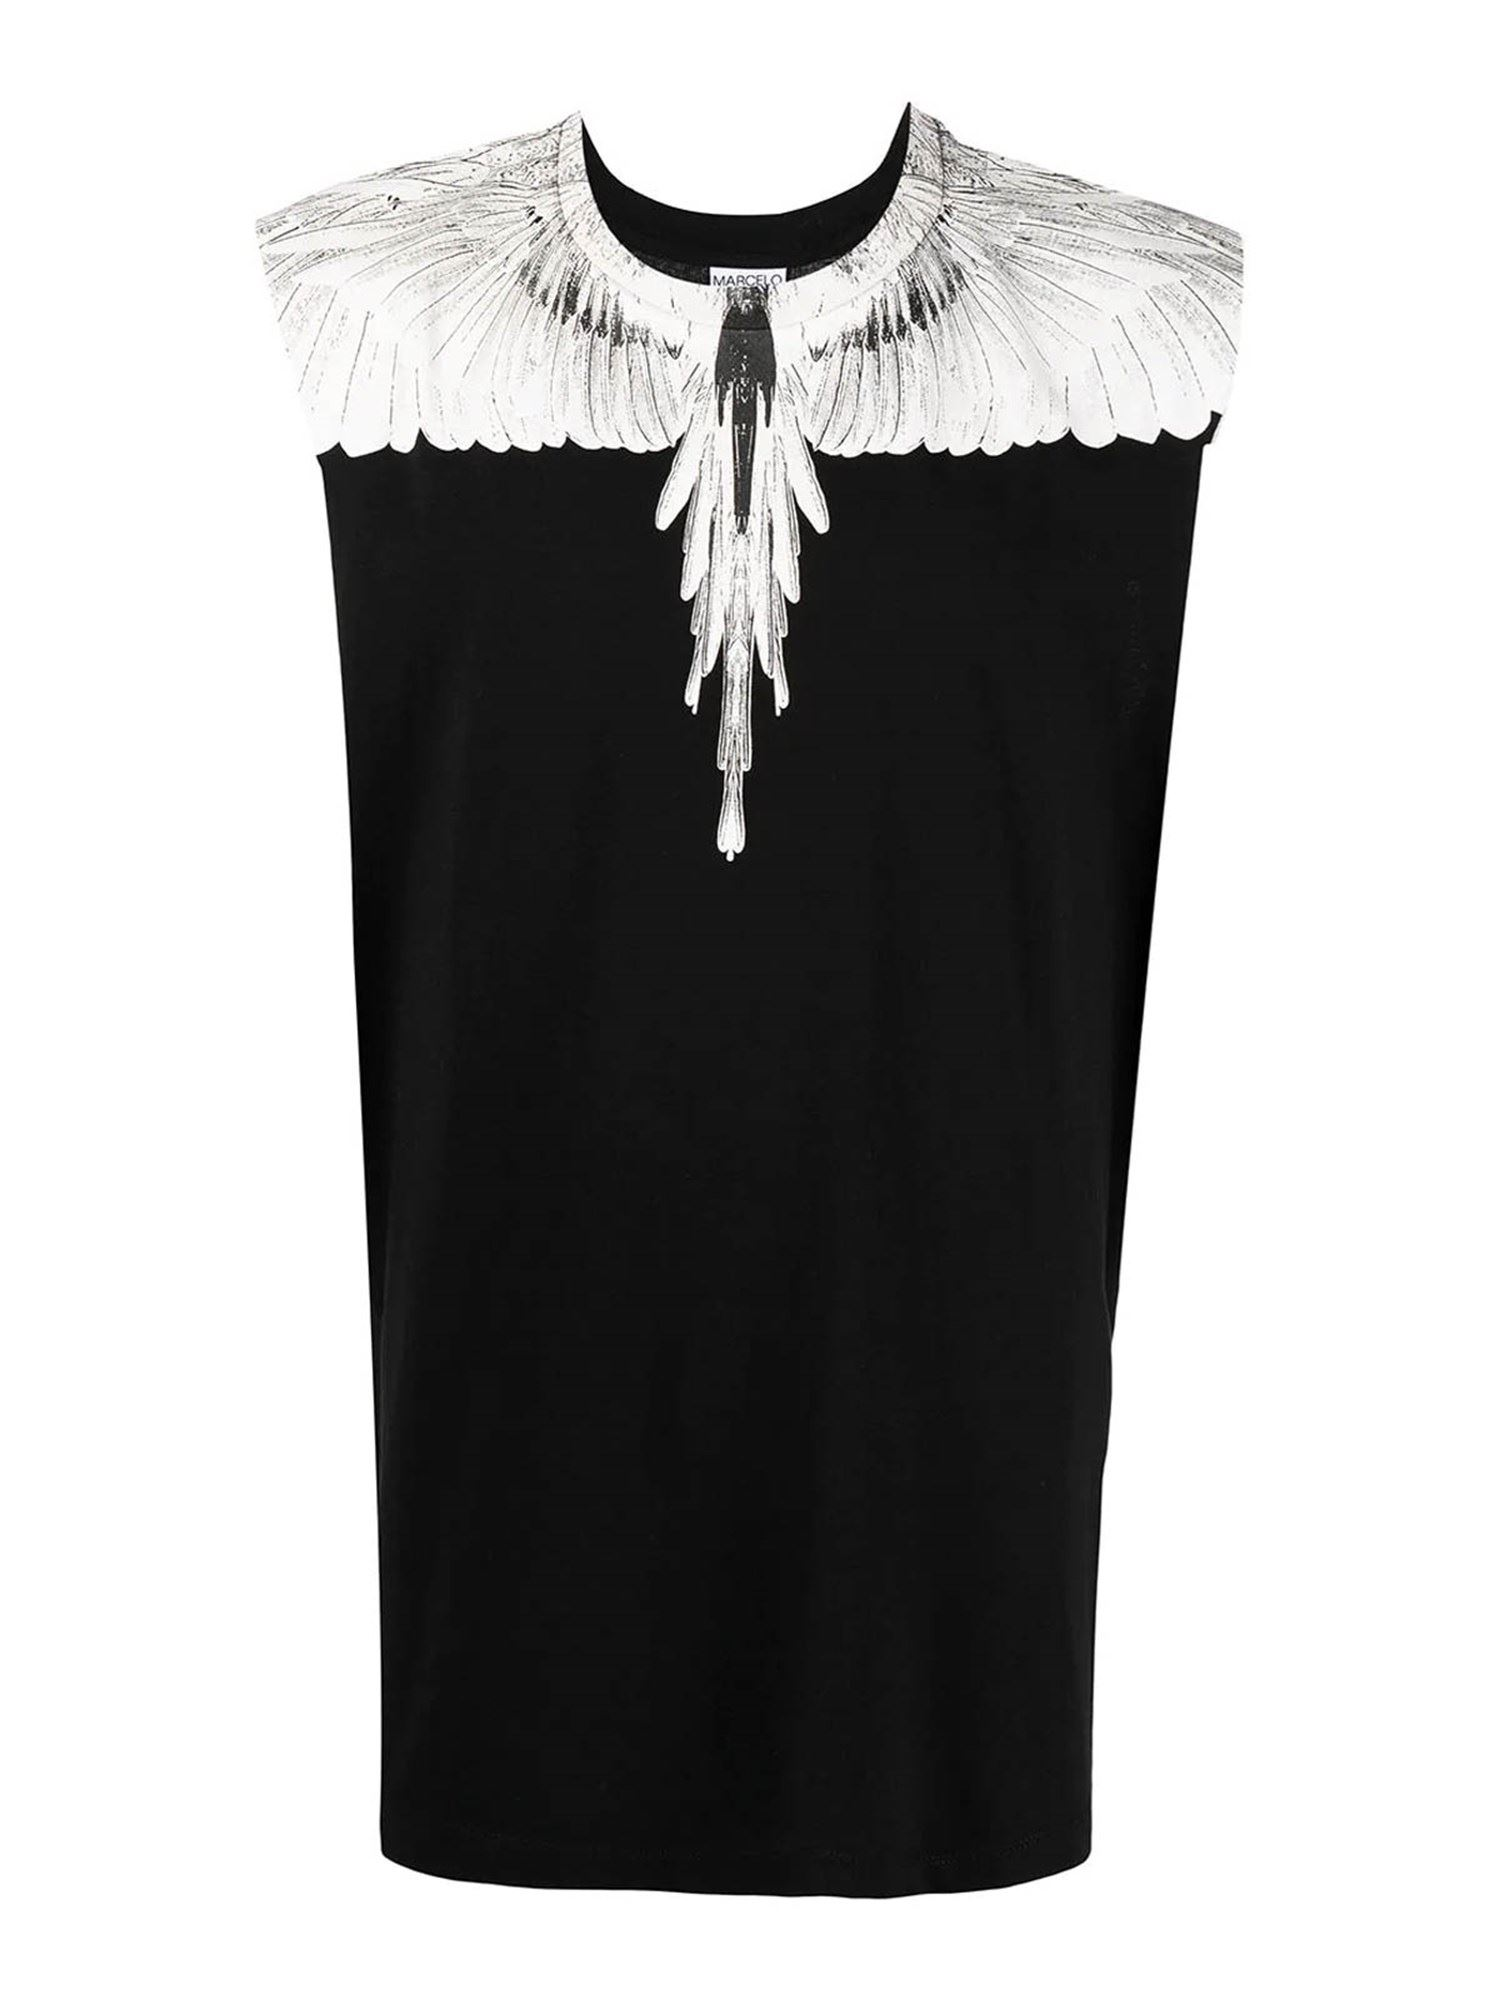 MARCELO BURLON COUNTY OF MILAN WINGS TANK TOP IN BLACK